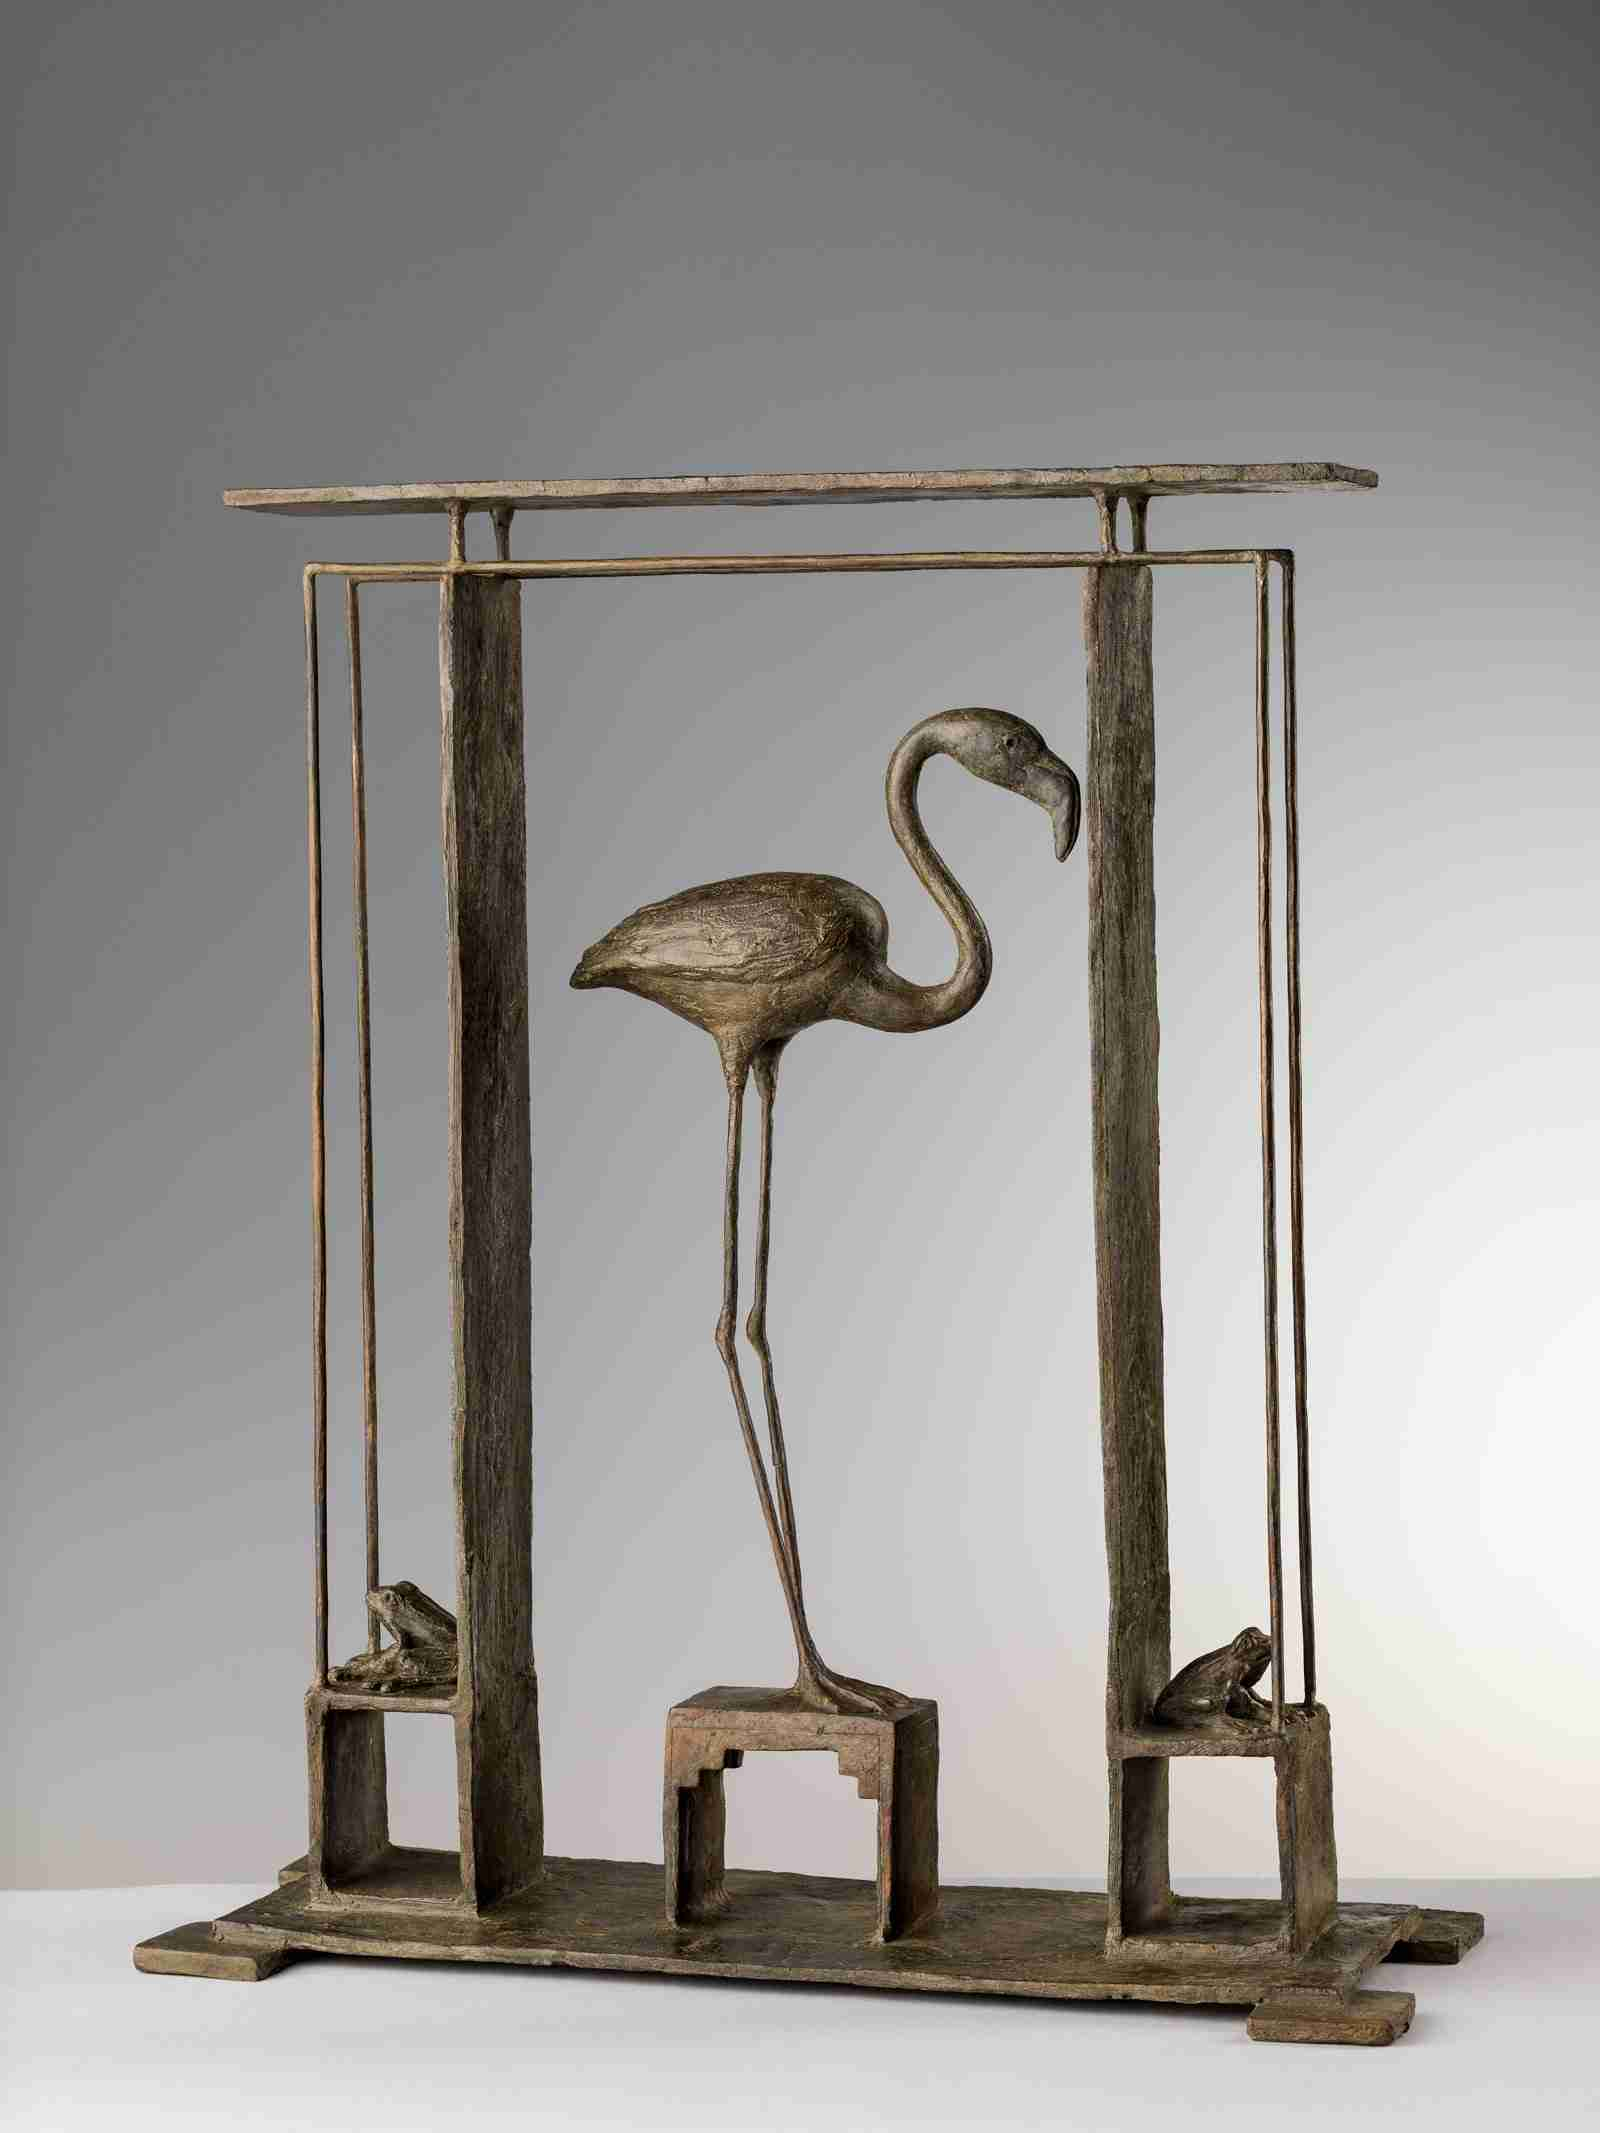 Nicola Lazzari. Italian, b.1957